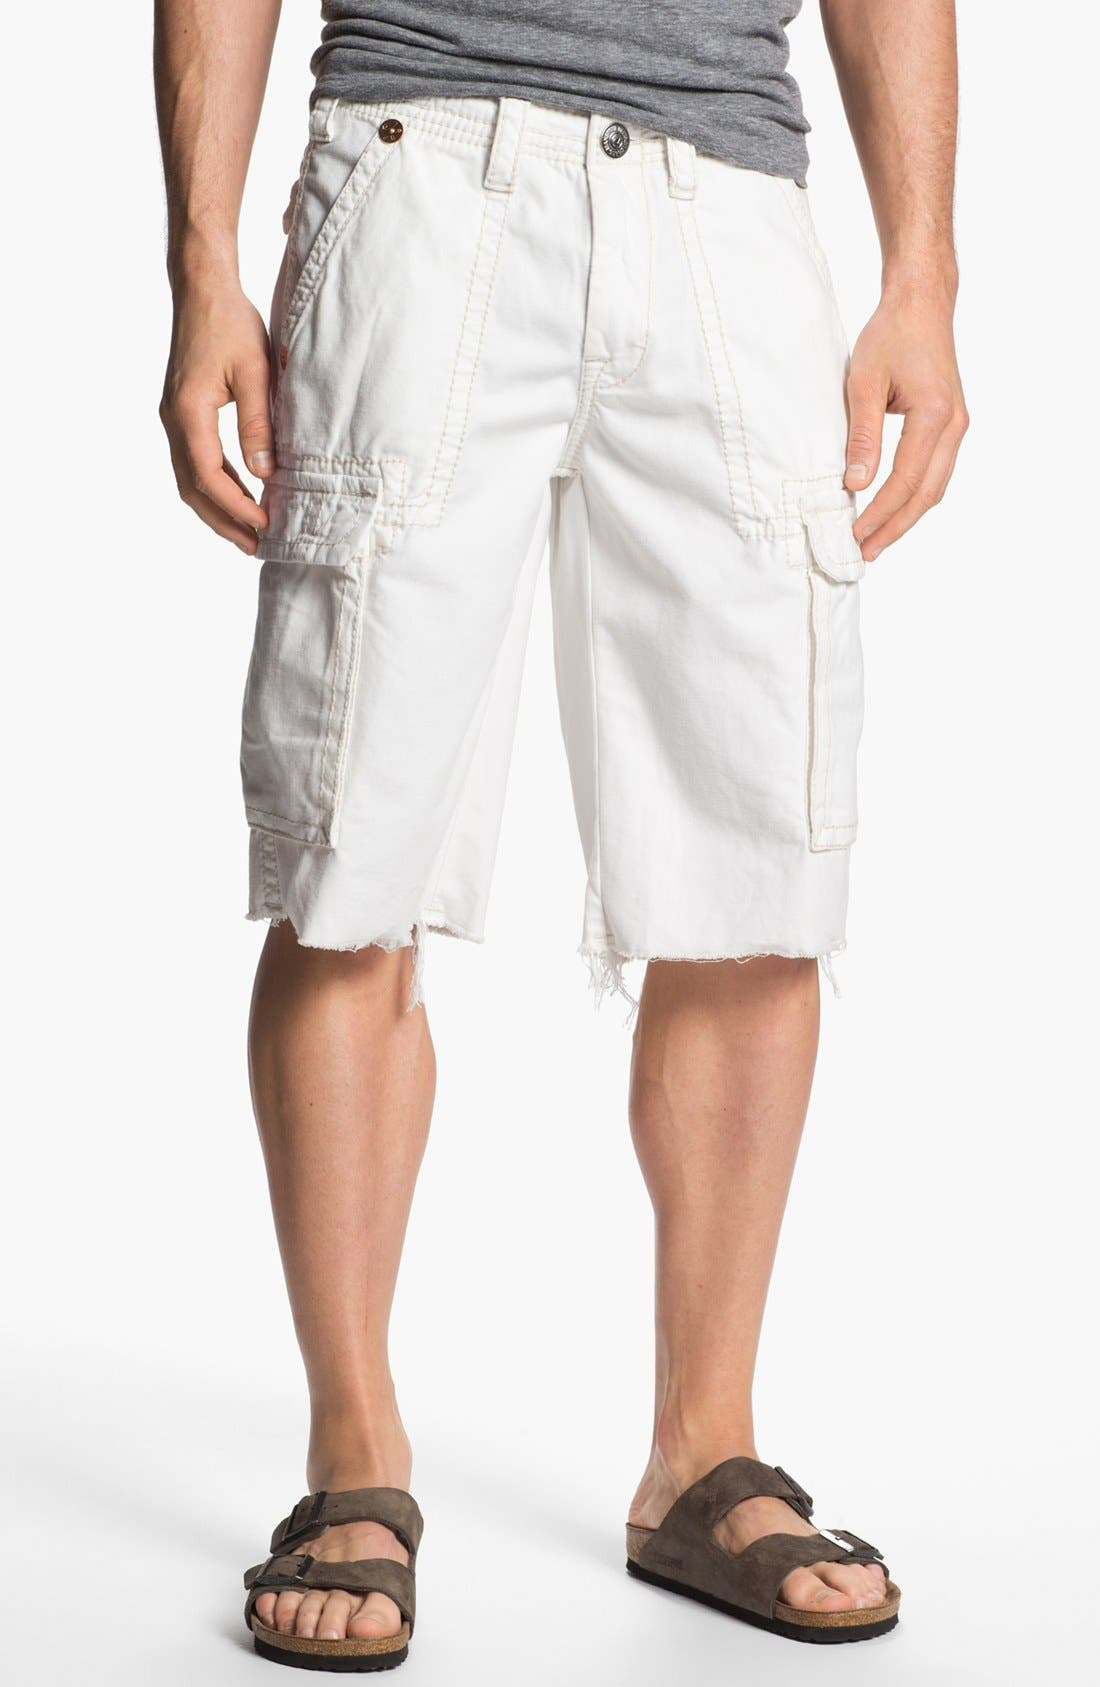 Alternate Image 1 Selected - True Religion Brand Jeans 'Isaac' Cargo Shorts